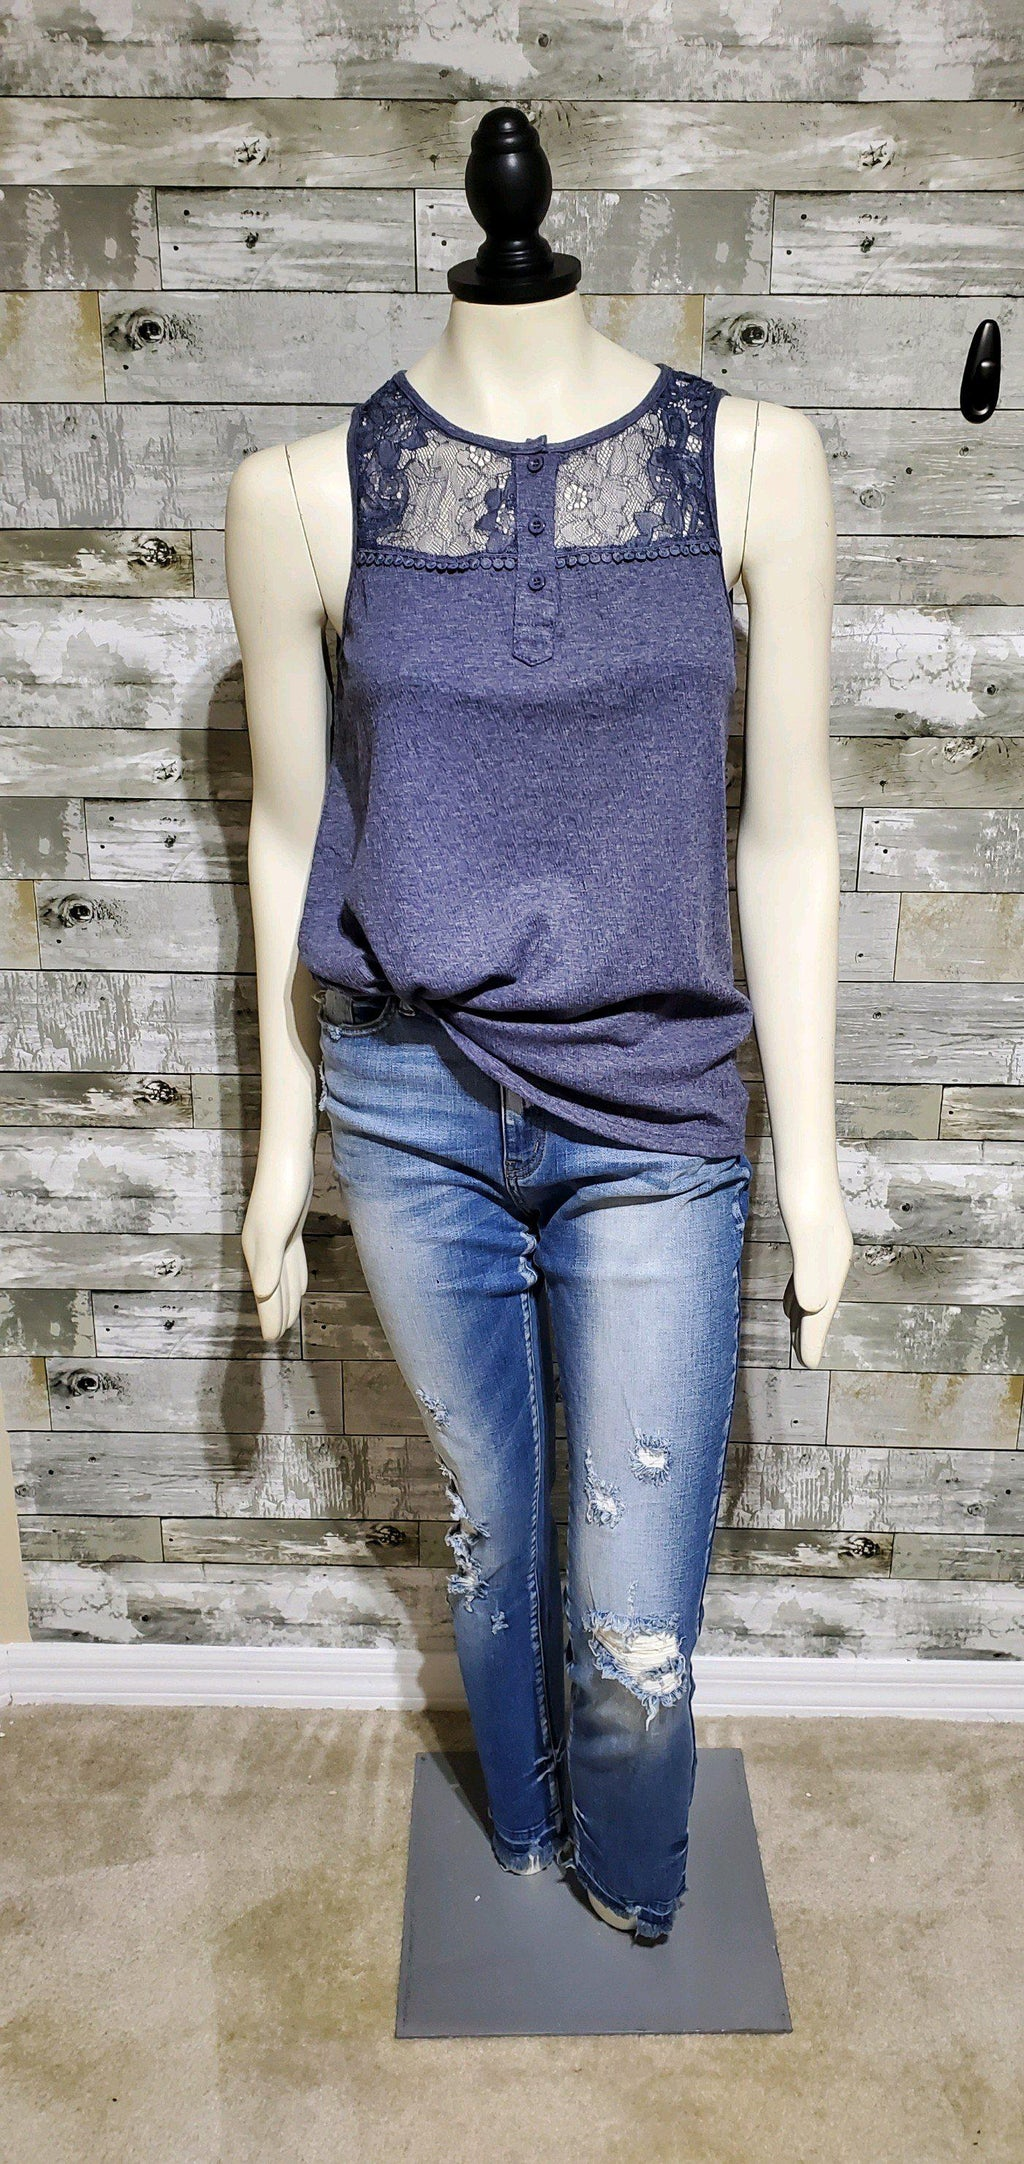 Navy Lace York Tank-Tanks-Litchfield Lane Boutique-Litchfield Lane Boutique